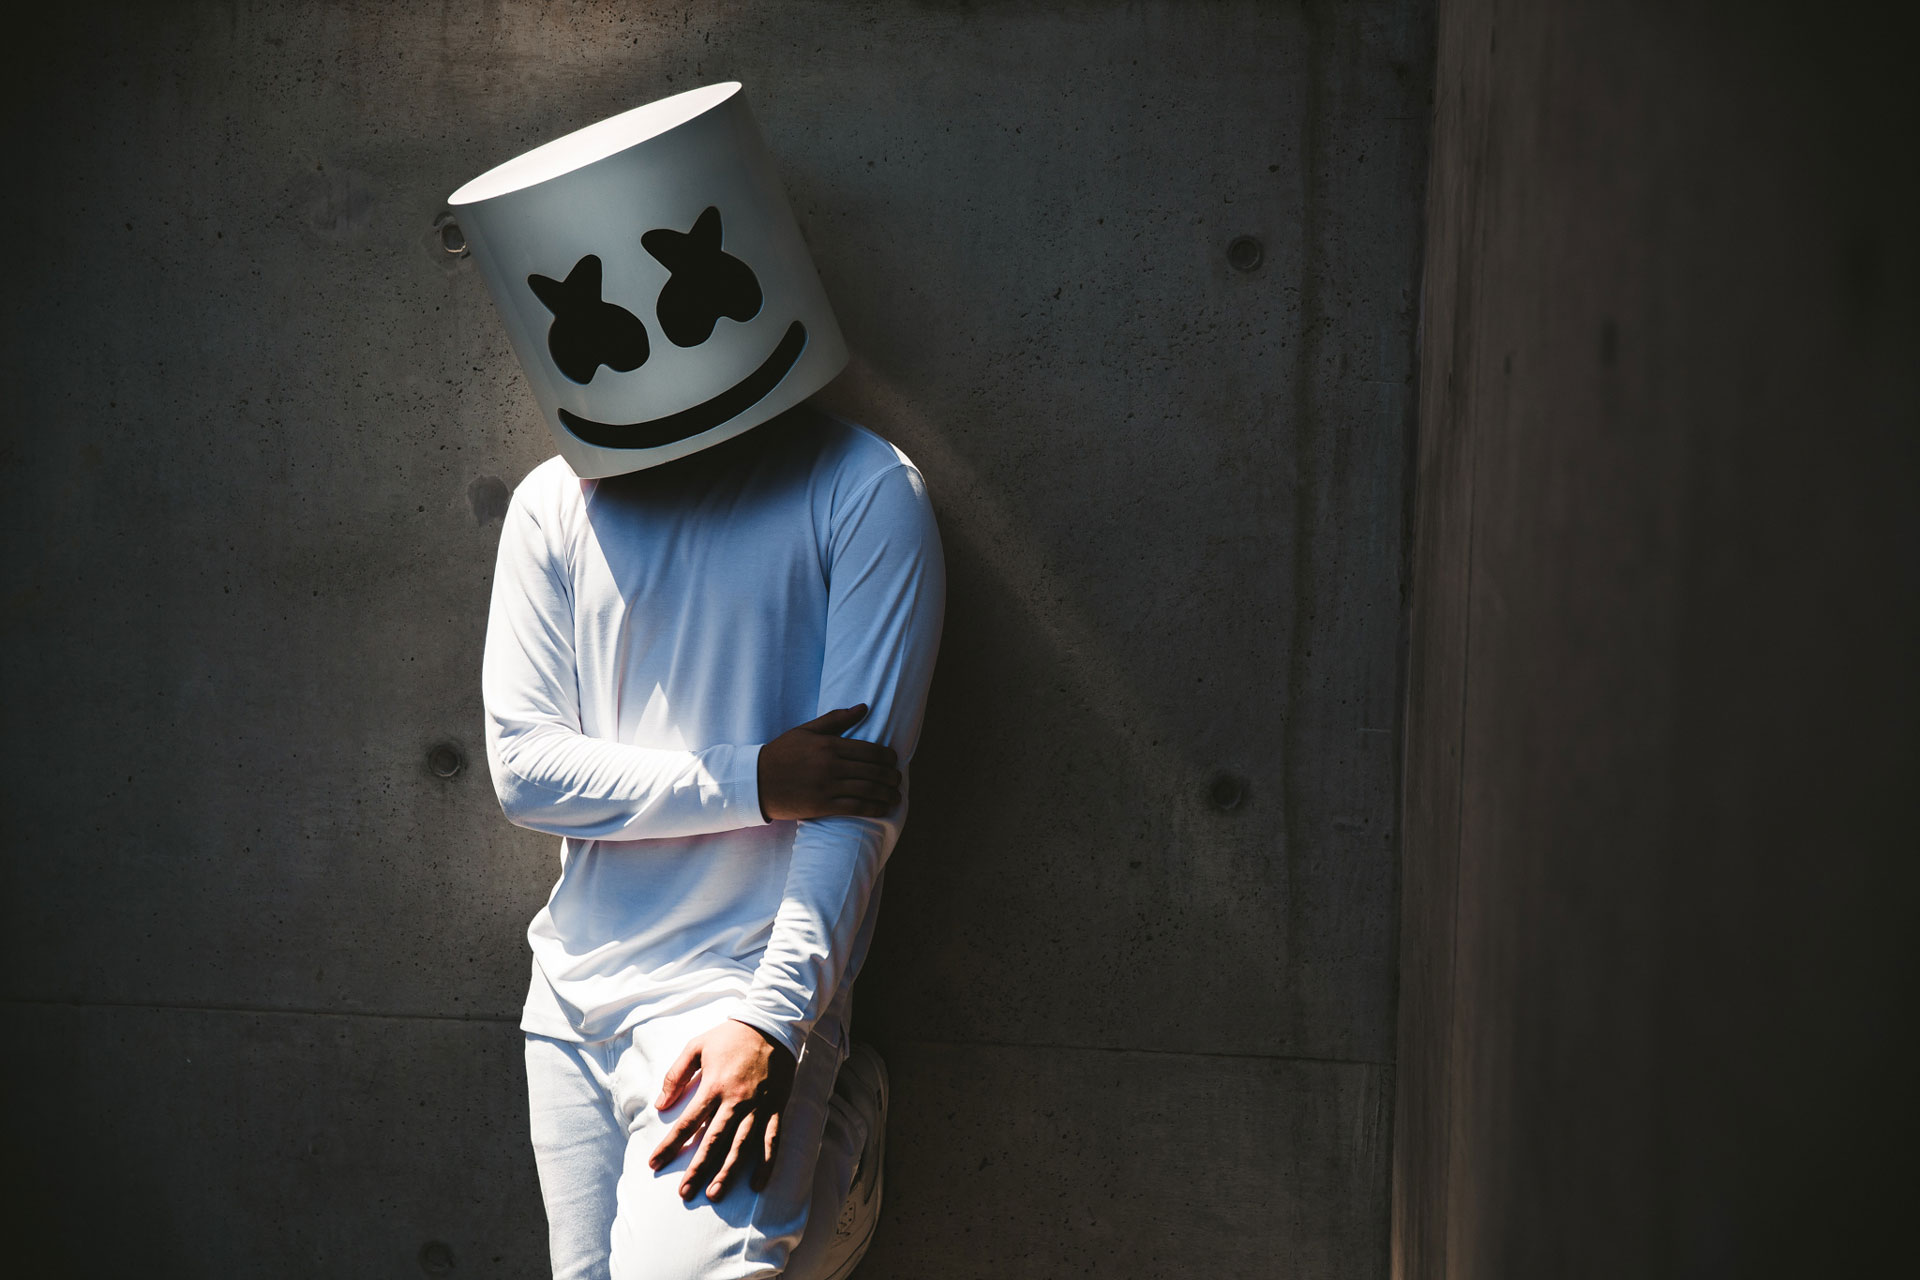 1280x720 Marshmello 720p Hd 4k Wallpapers Images Backgrounds